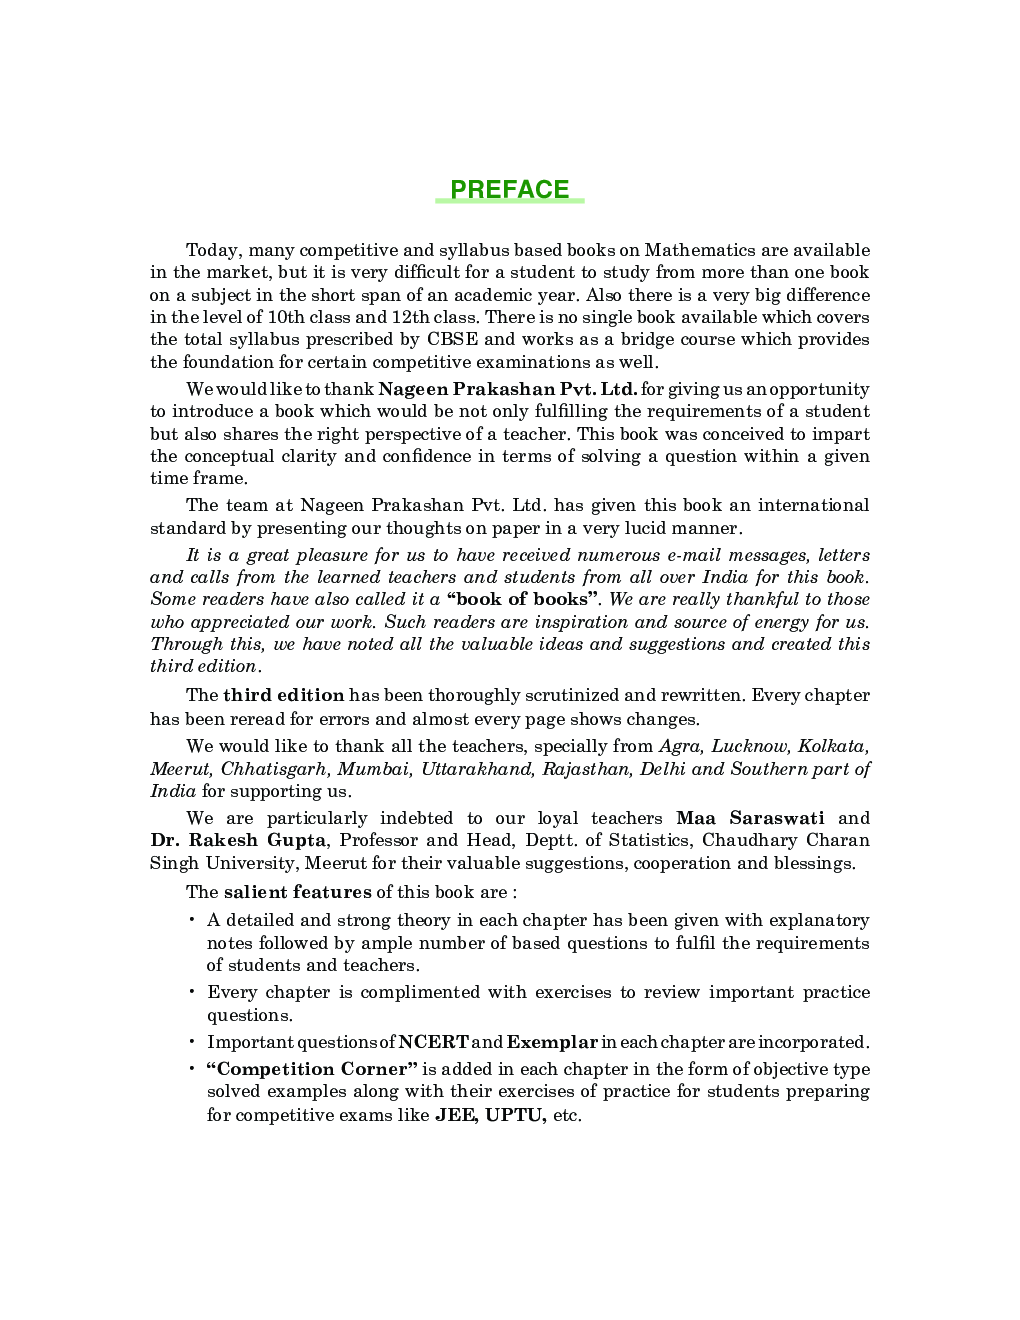 CBSE Mathematics Part-I For Class - XII - Page 4